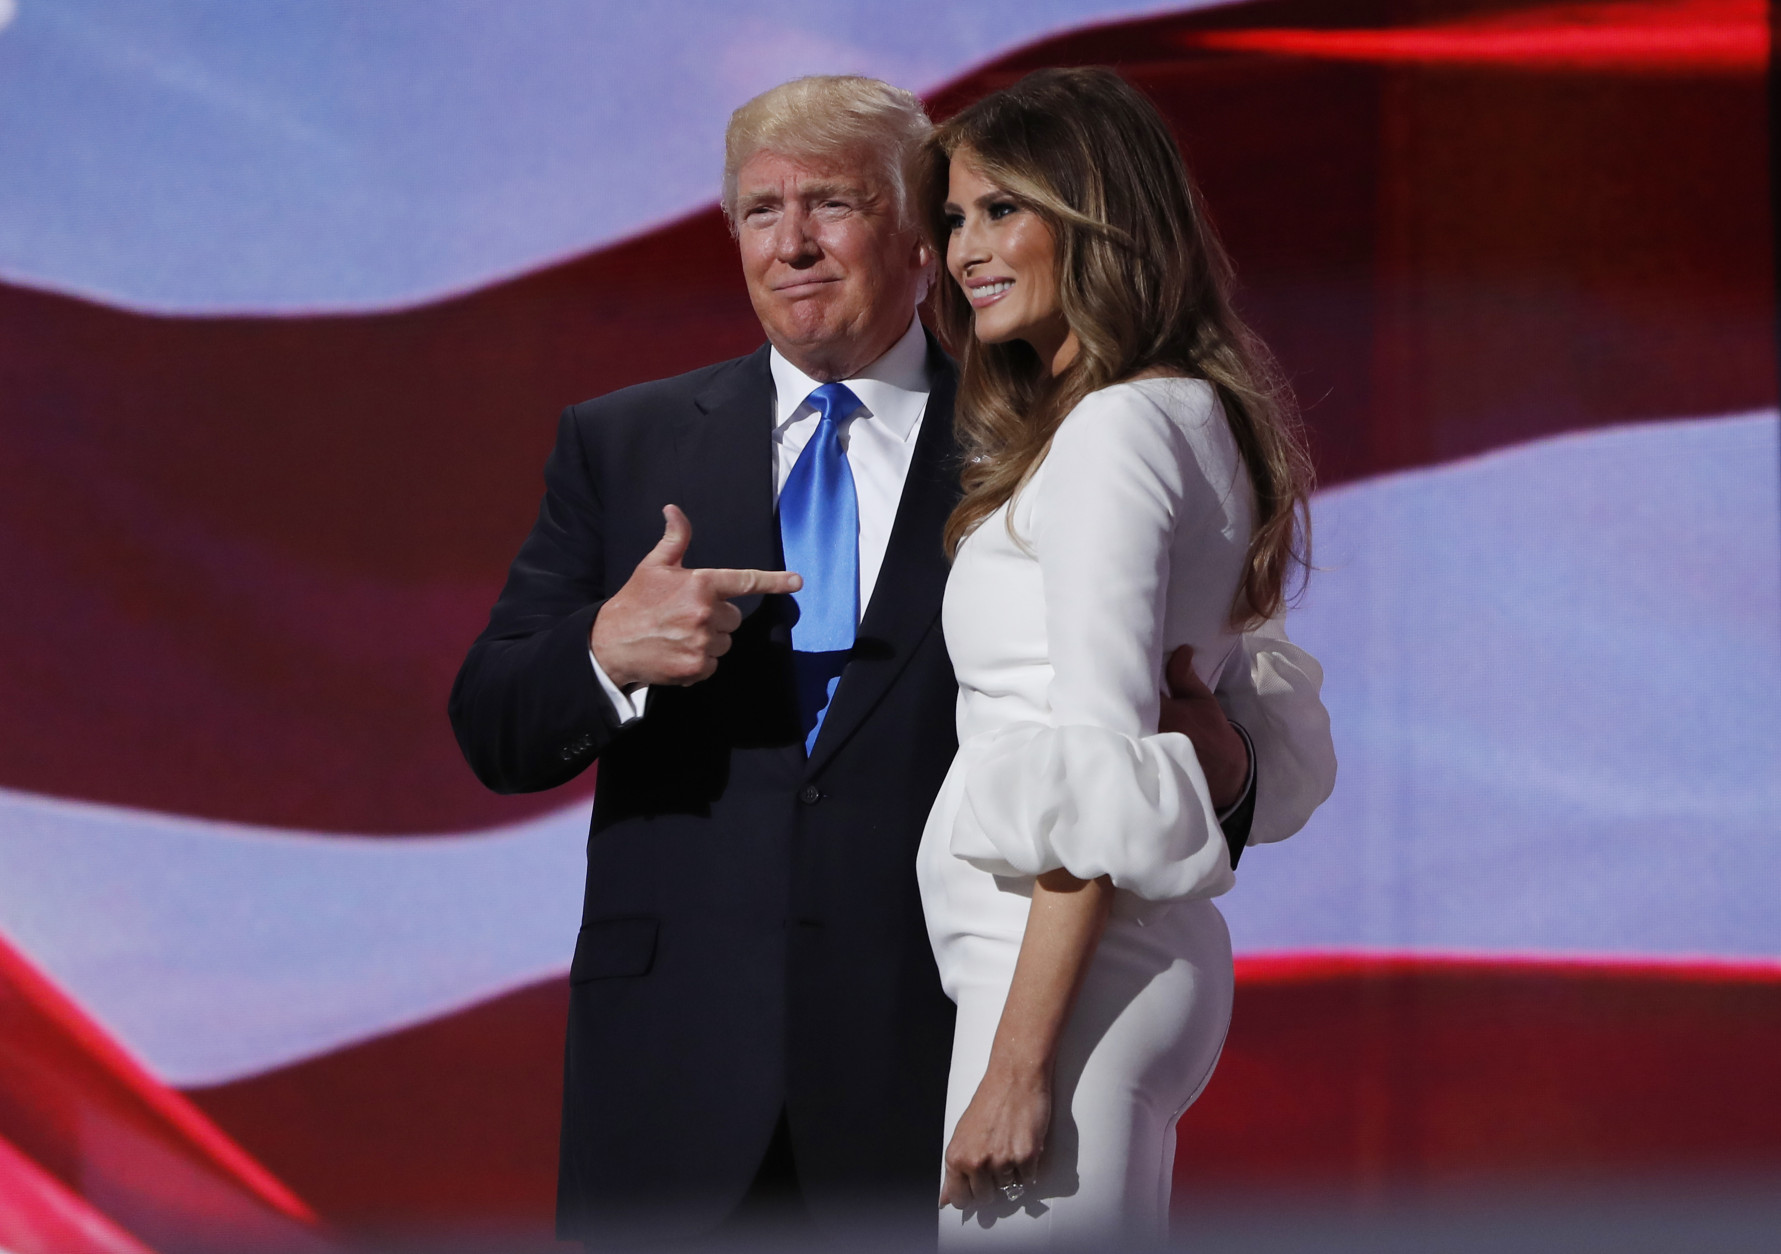 Donald and Melania Trump at her speech to the Republican Convention. She was accussed of using lines from Michelle Obama's speech to the Democratic Convention in 2008. Photo credit AP Photo/Carolyn Kaster